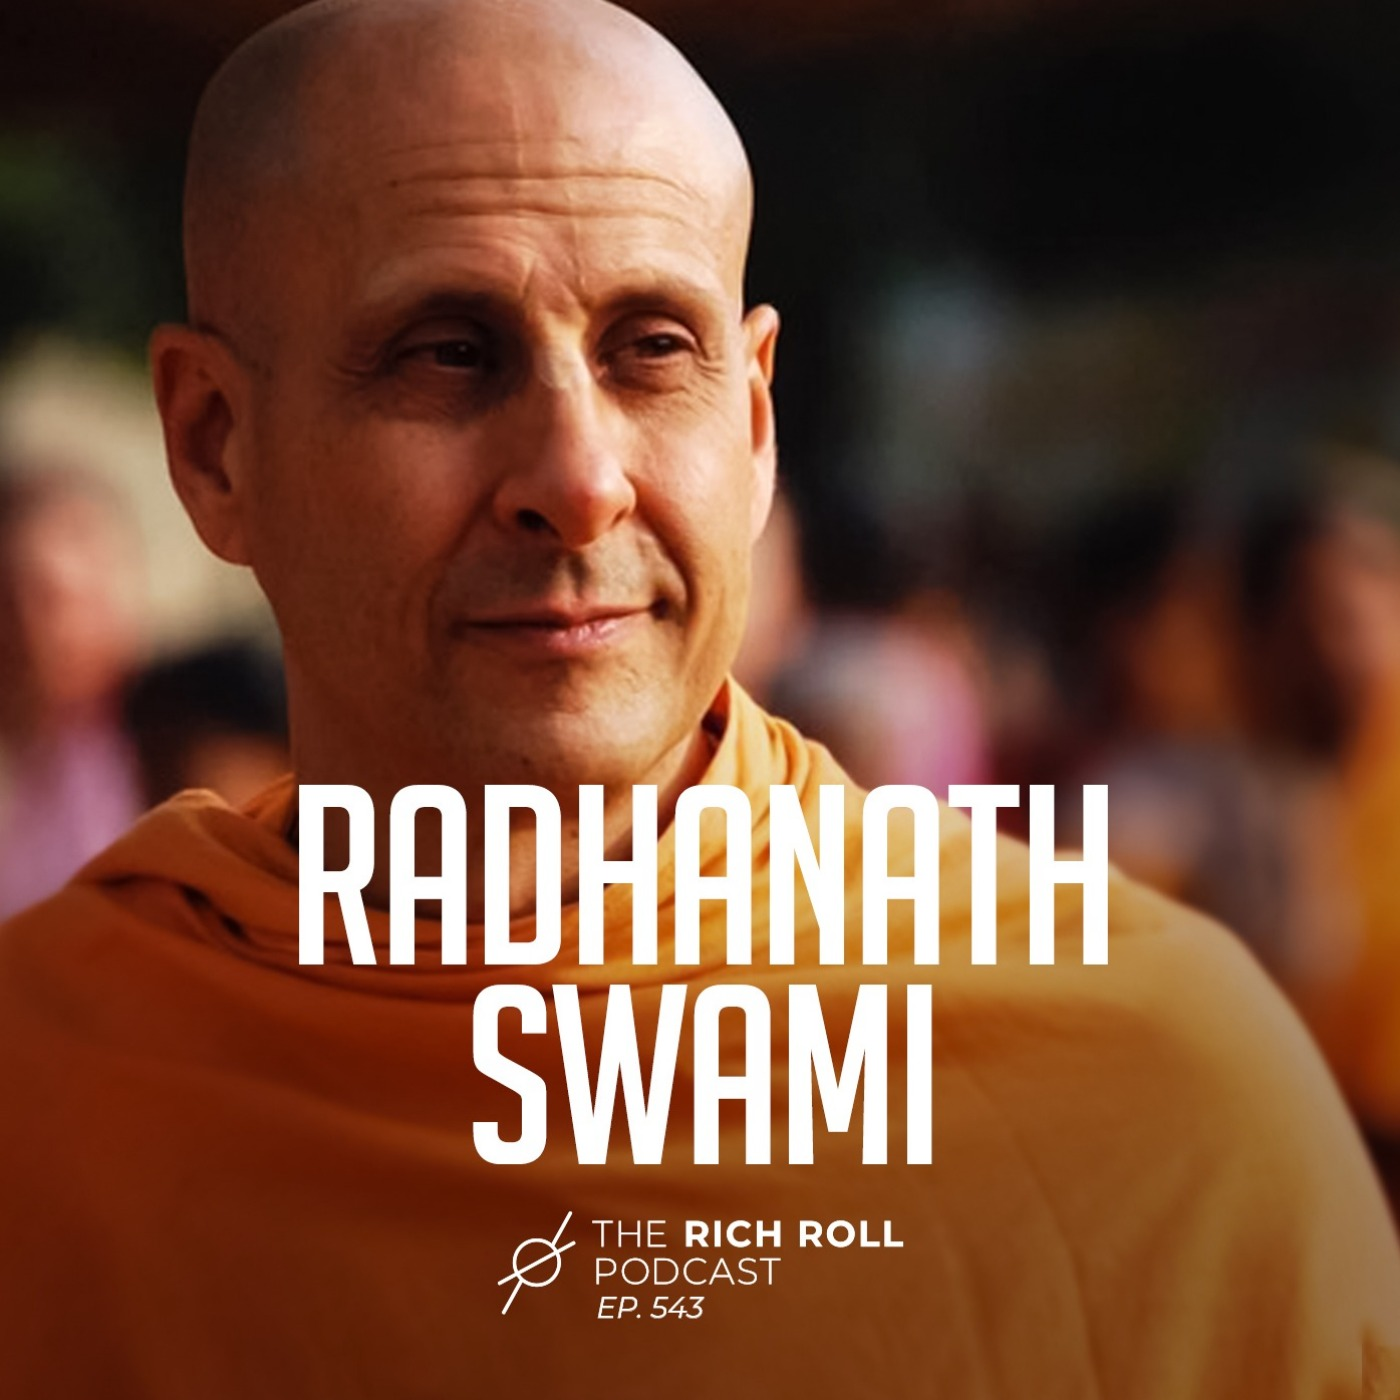 Radhanath Swami On The Search For Light